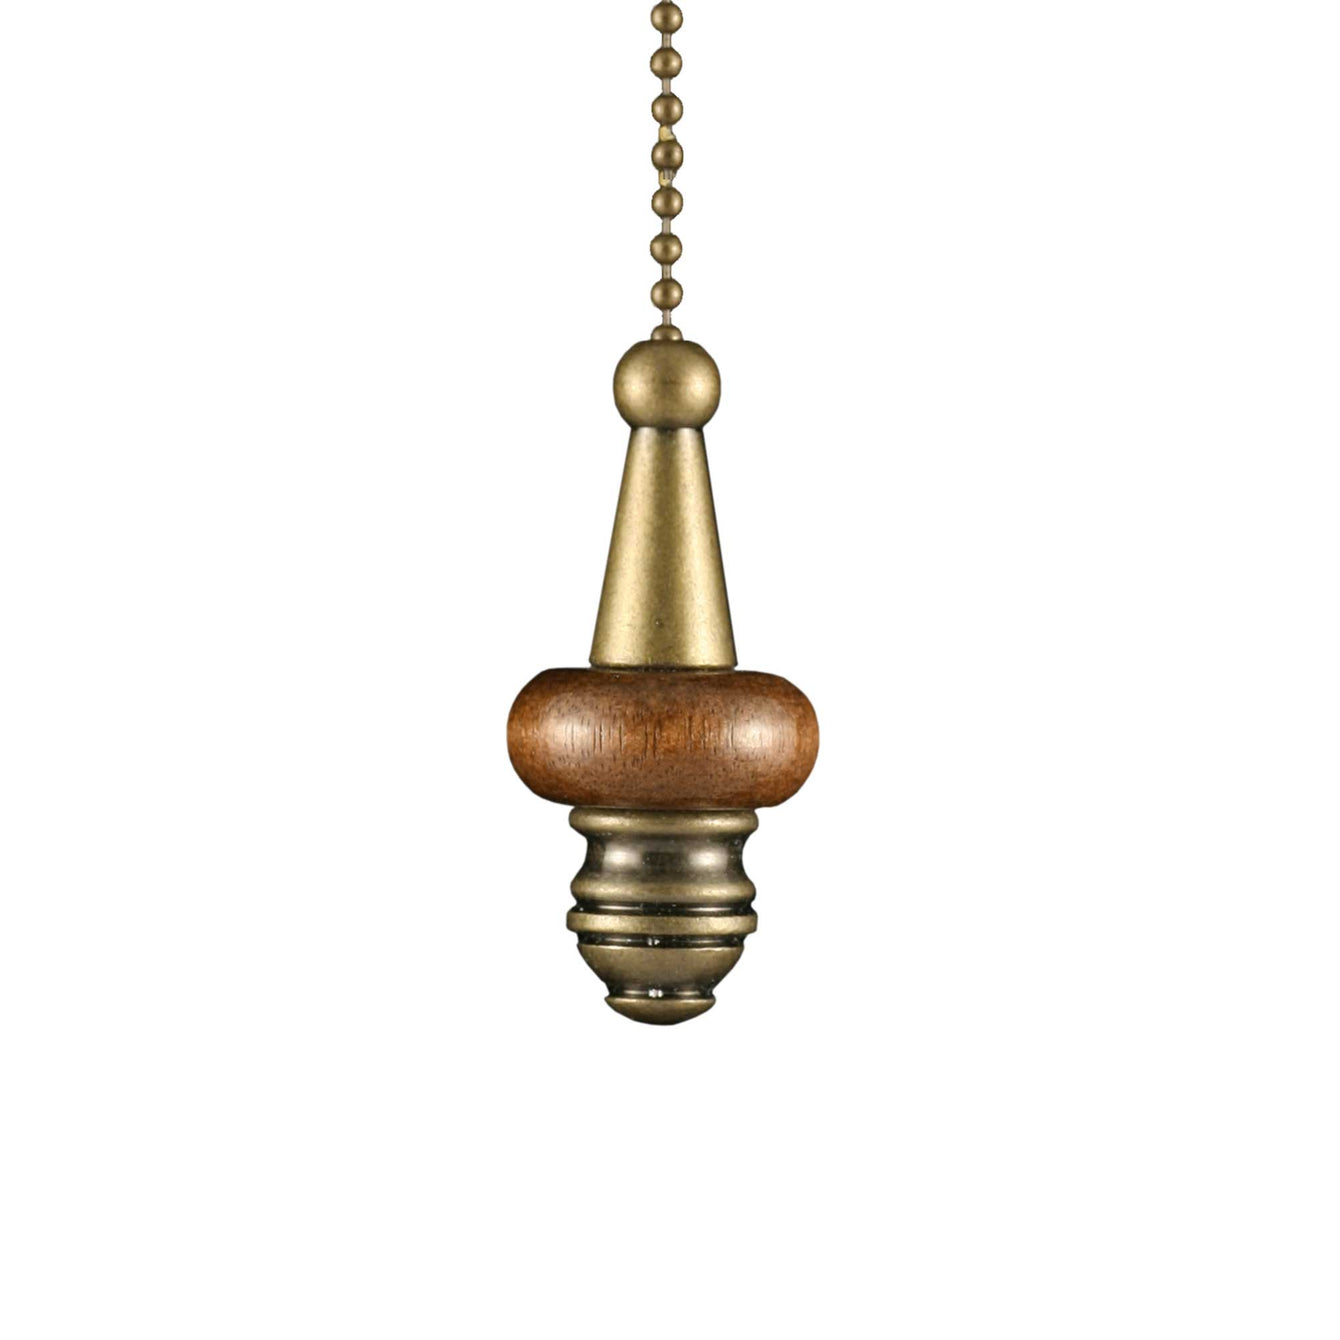 ElekTek Light Pull Chain Cord Antique Brass Wooden Disc With 80cm Matching Chain - Buy It Better Mahogany